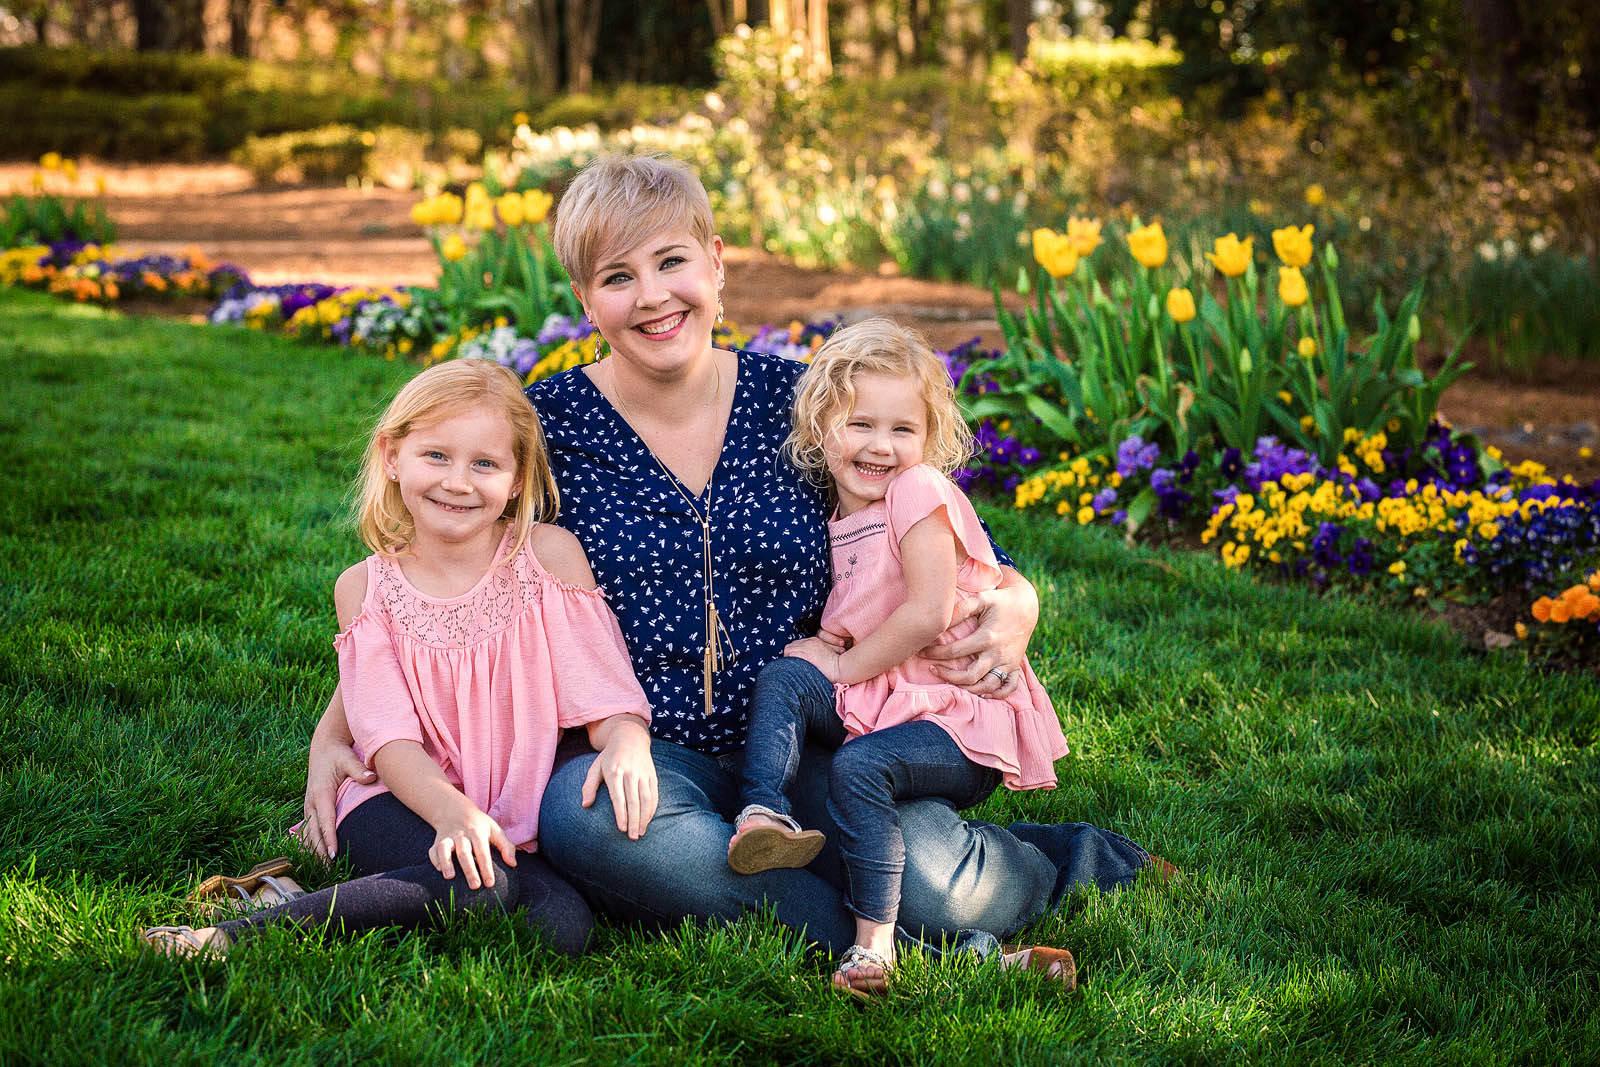 Spring Family Picture Colors - The Best Family Of 2018